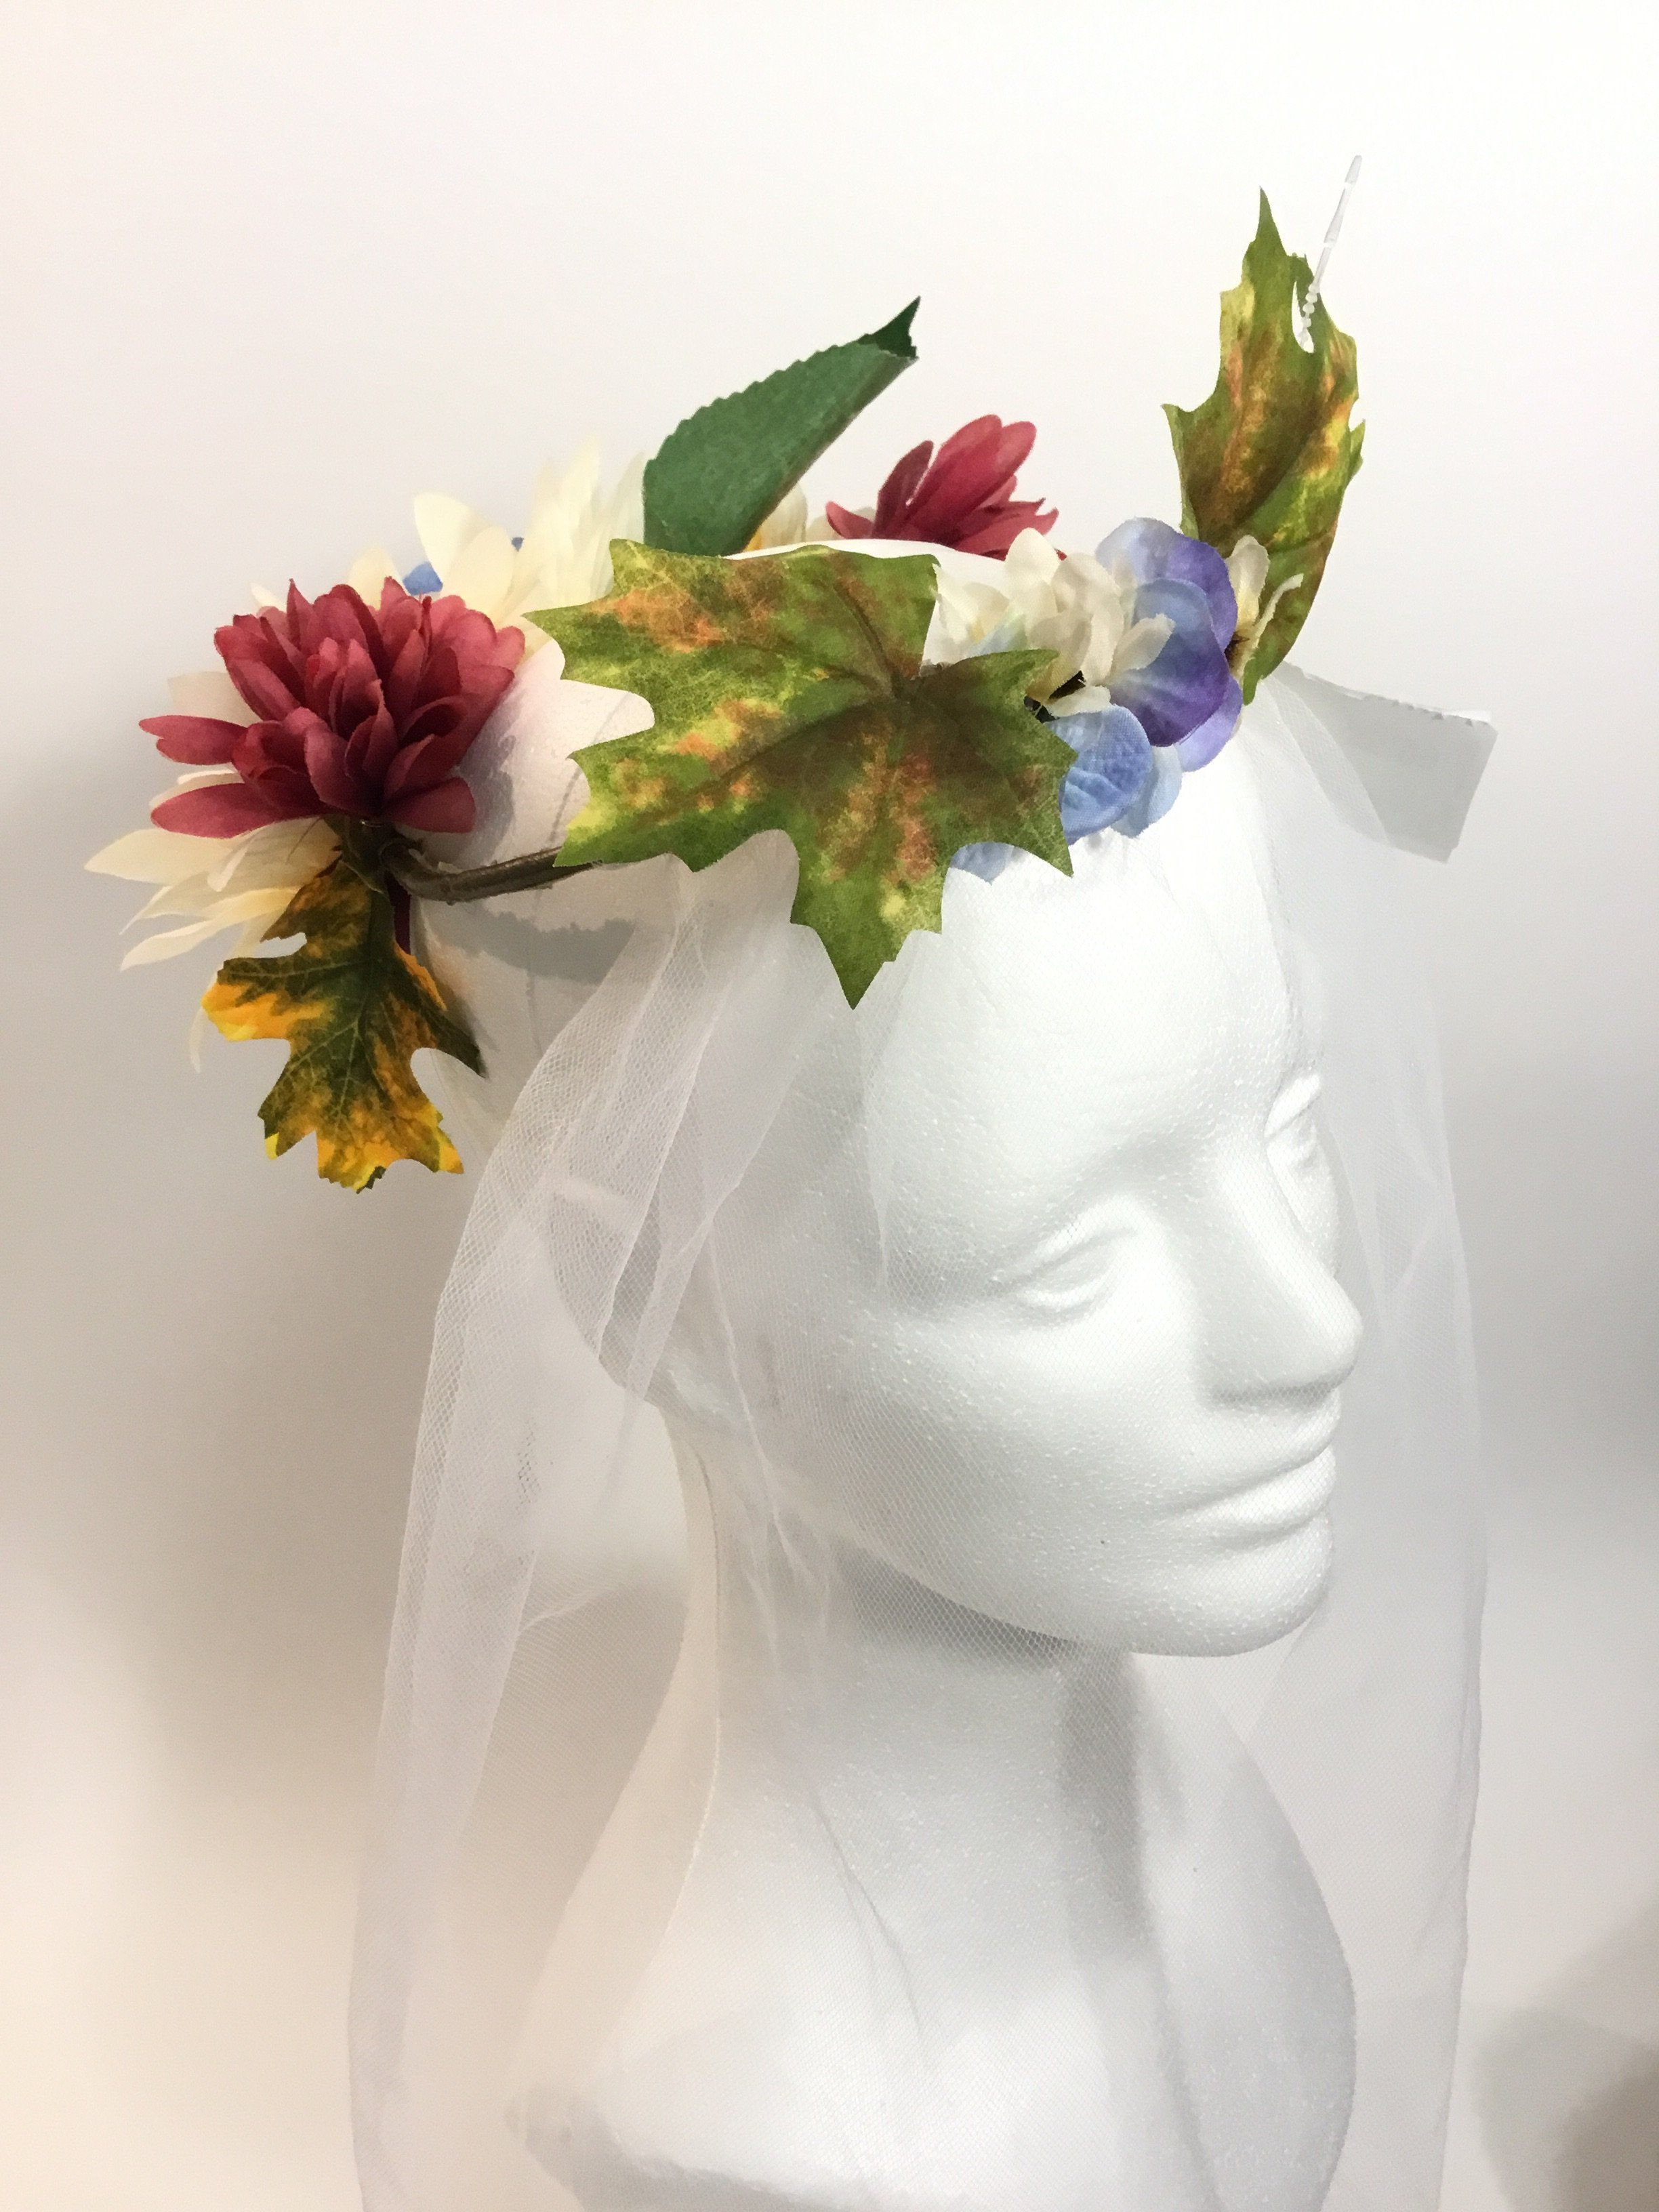 Online flower crown image collections flower wallpaper hd pin by consignmine va on consign mines online shop pinterest flower crowns veils online shopping vase izmirmasajfo Images